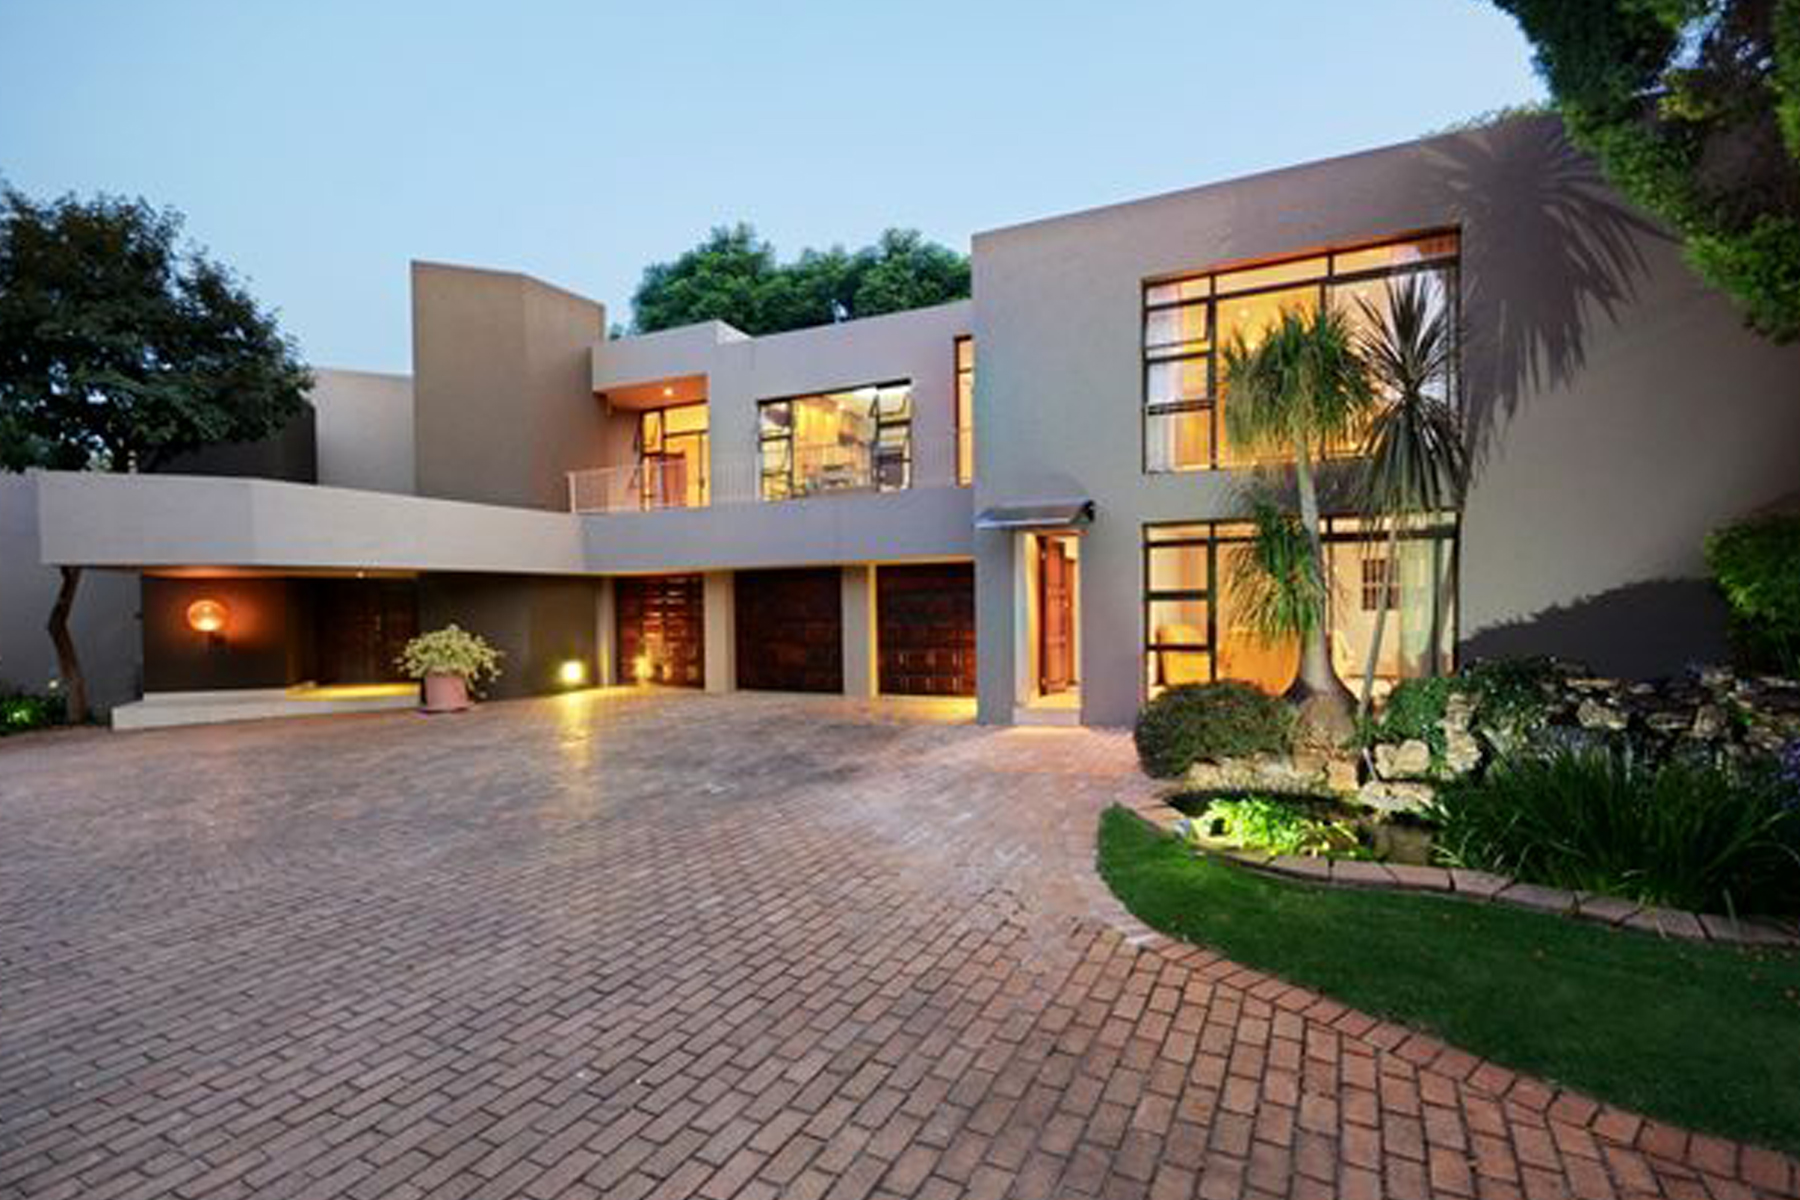 Single Family Home for Sale at Constance Road, Bedfordview Johannesburg, Gauteng 2007 South Africa